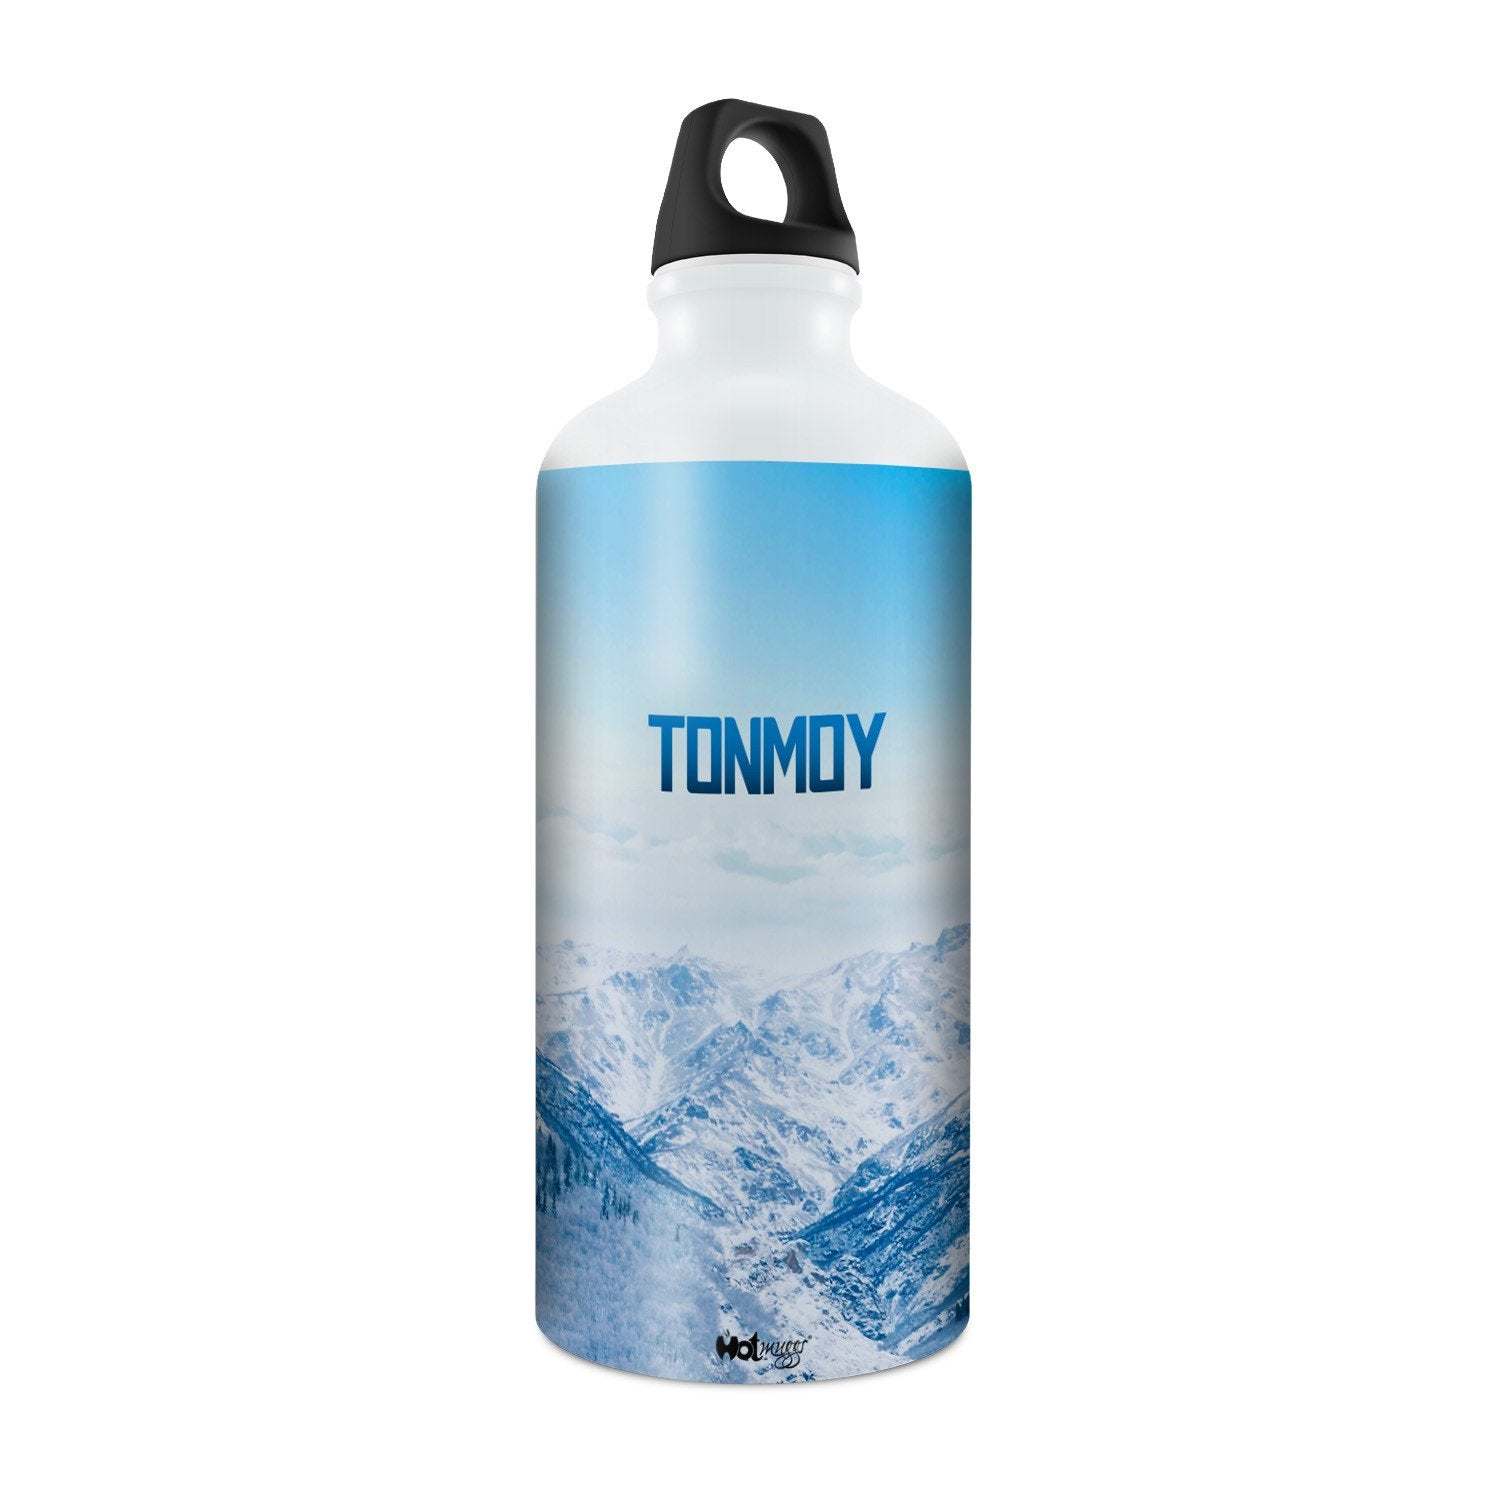 Me Skies Bottle - Tonmoy